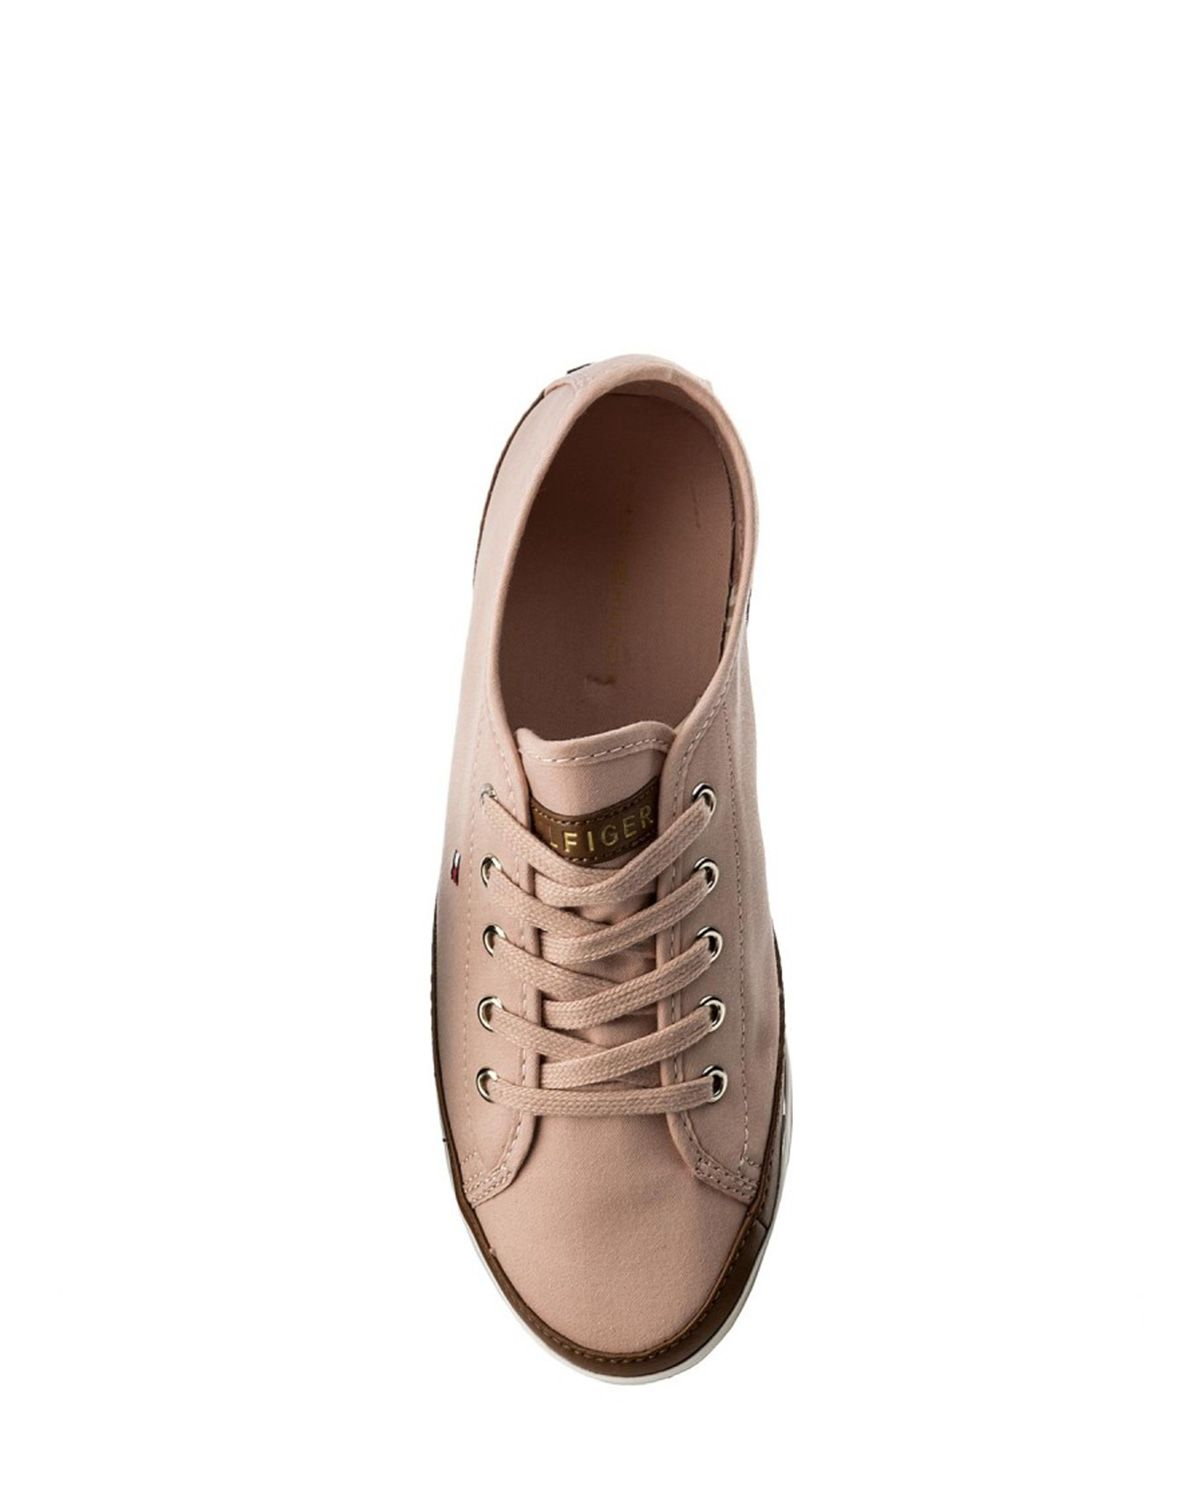 Tommy Hilfiger Iconic Kesha Sneakers FW0FW02823 pink